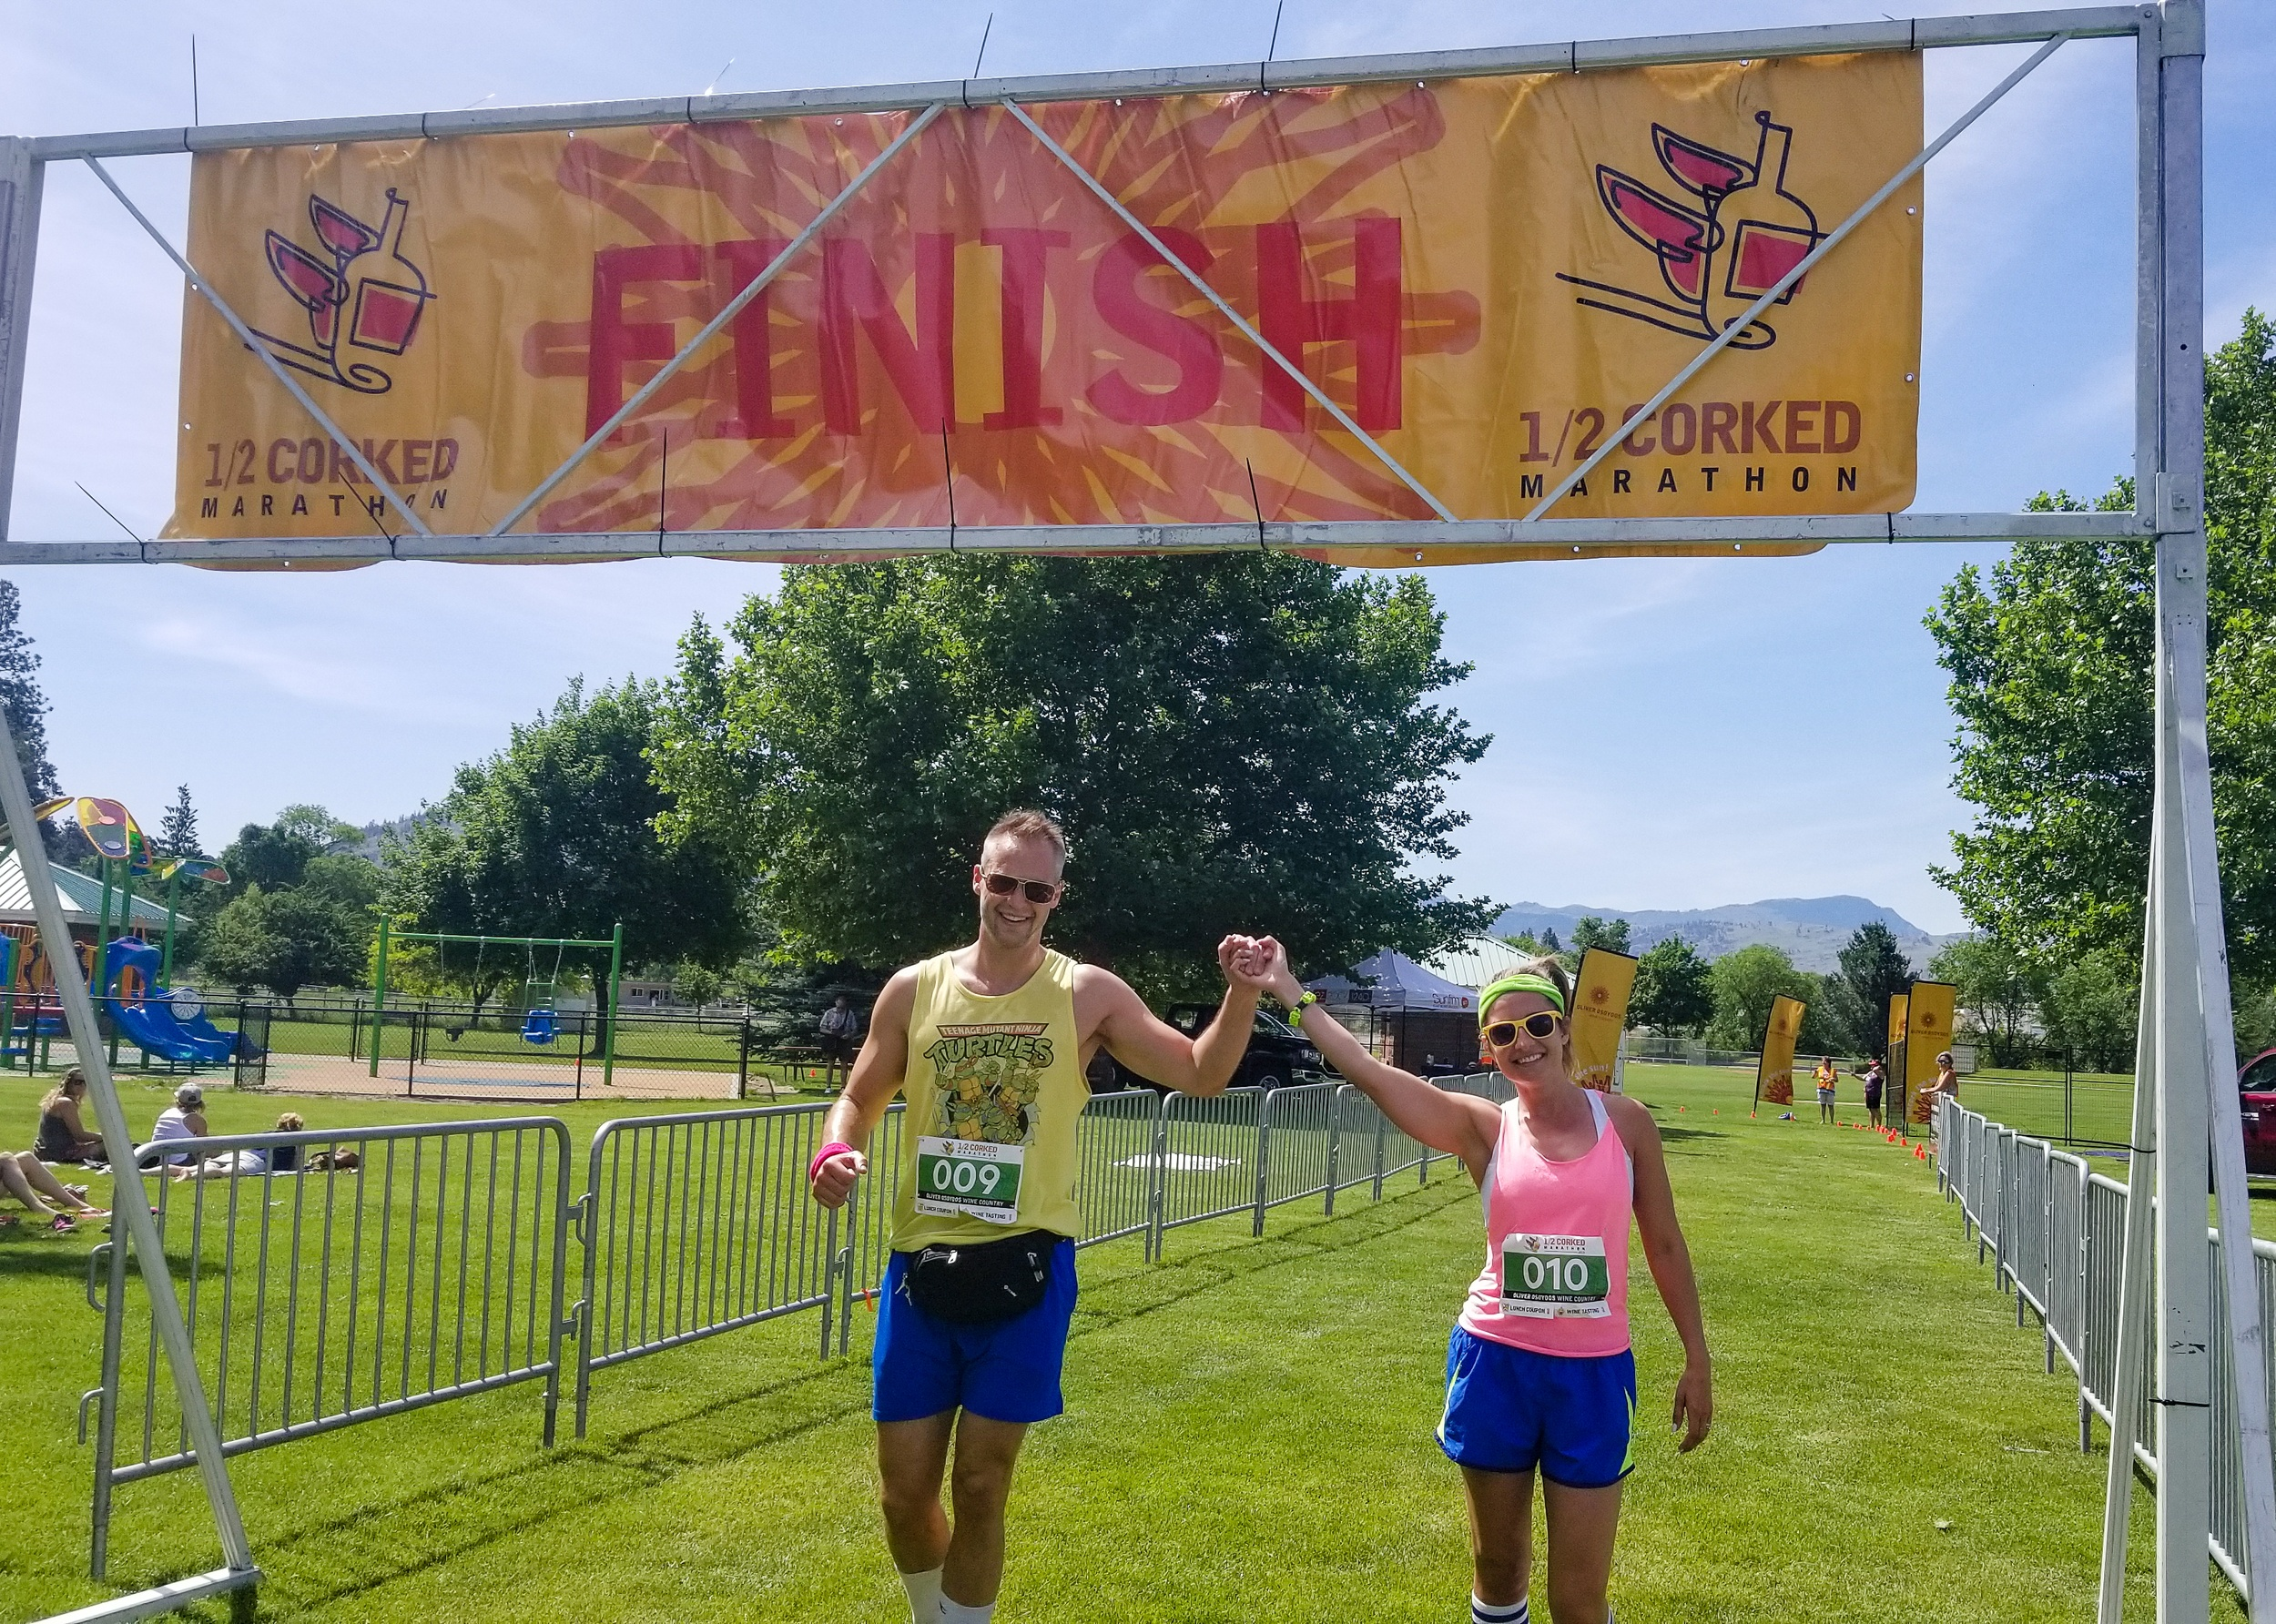 Half Corked Marathon wine run in Osoyoos, B.C.